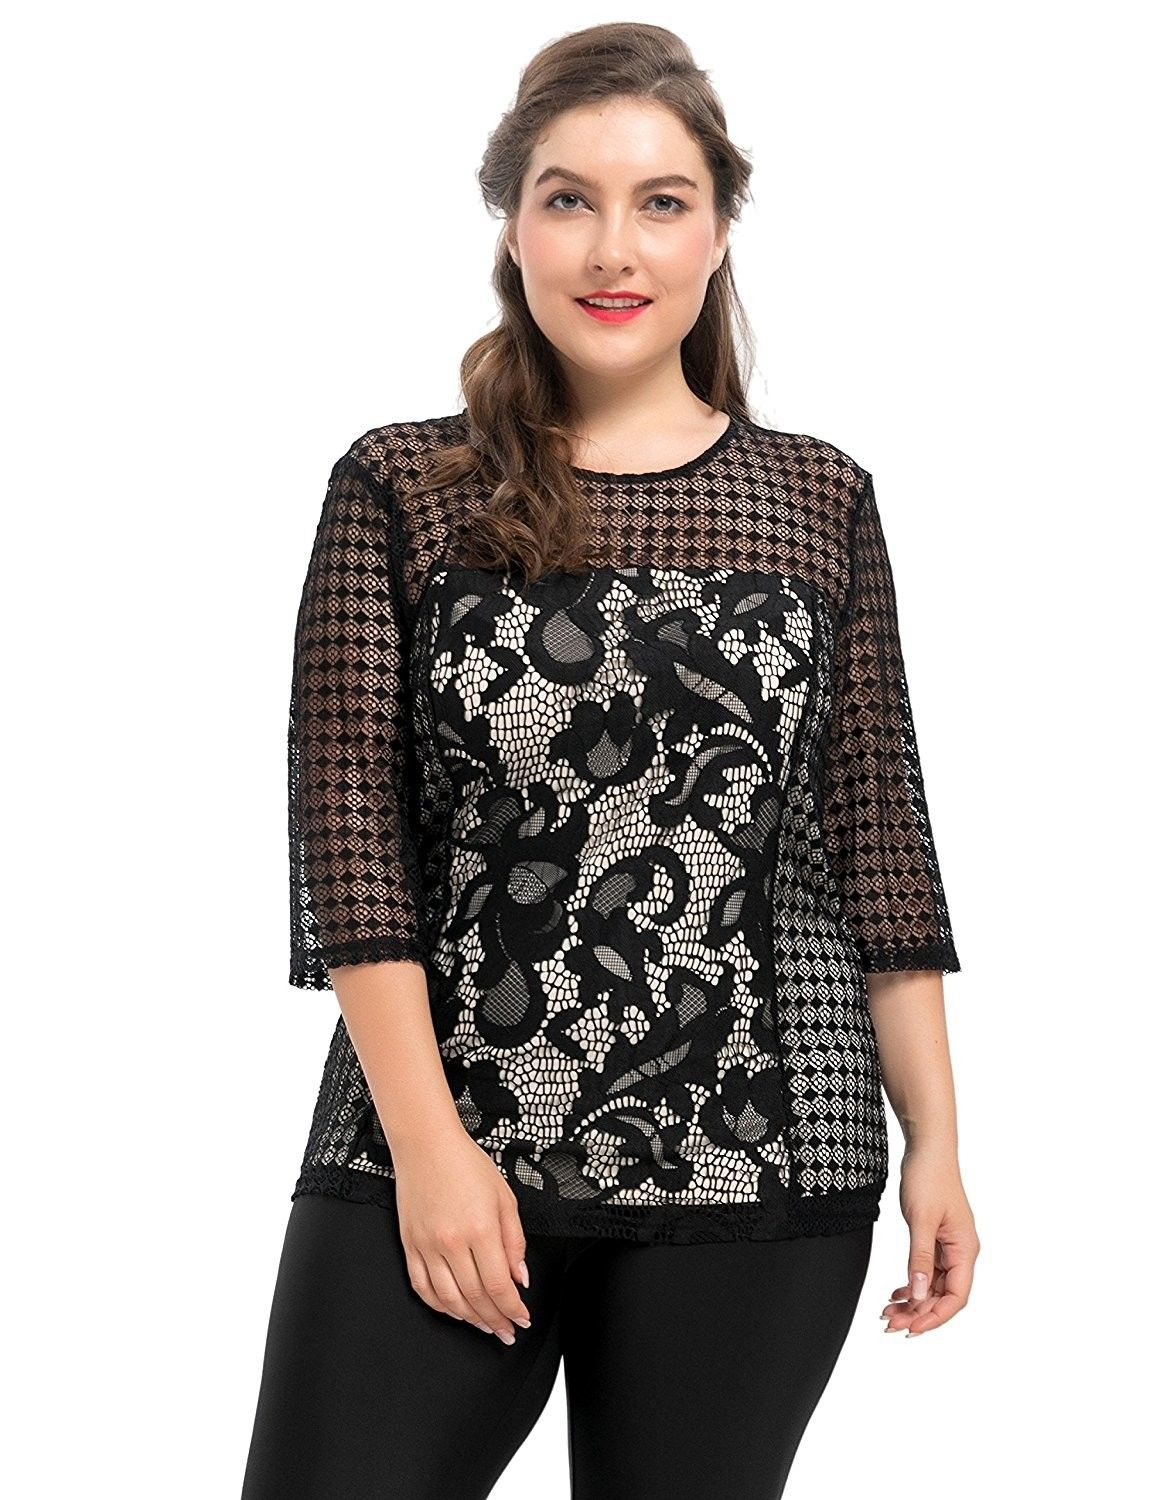 35b6651fcf9ee Women s Stretch Contrast Lined Plus Size Floral Printed Lace Top 1X ...